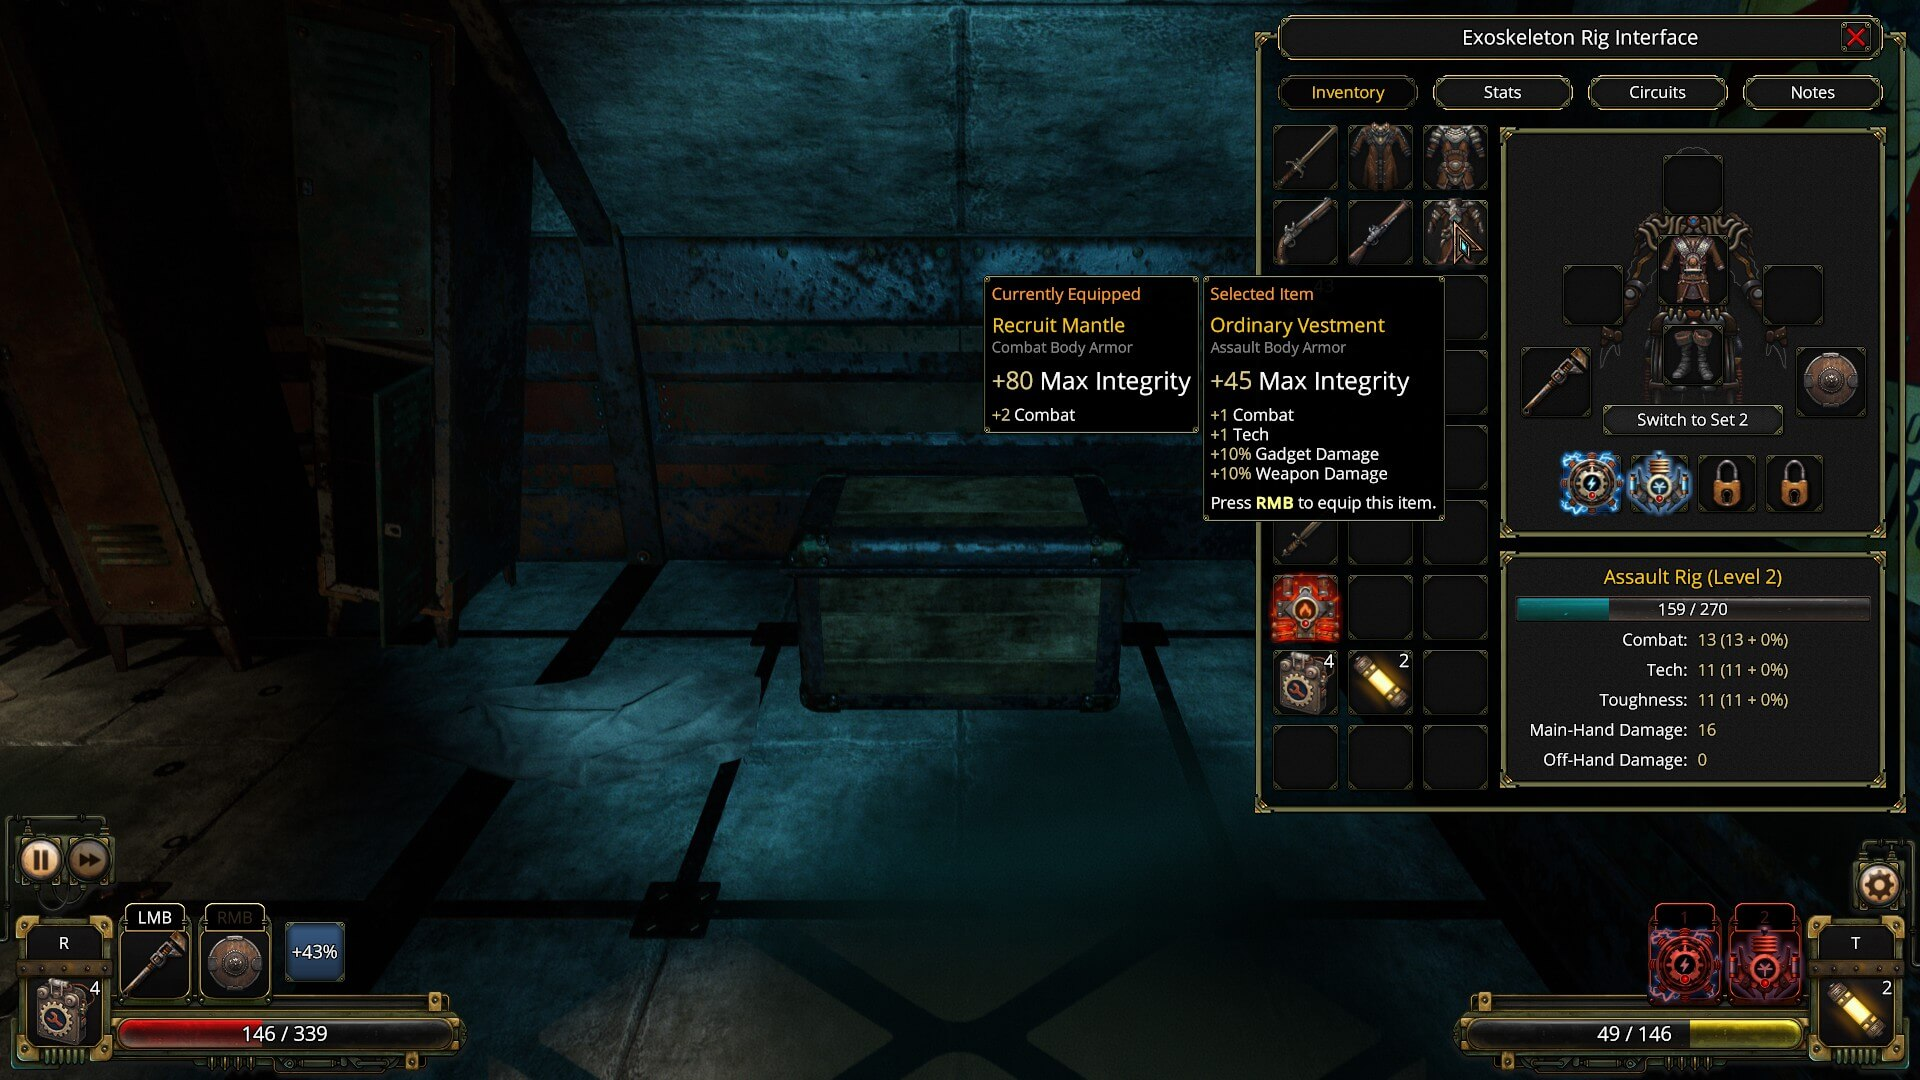 Vaporum and the inventory